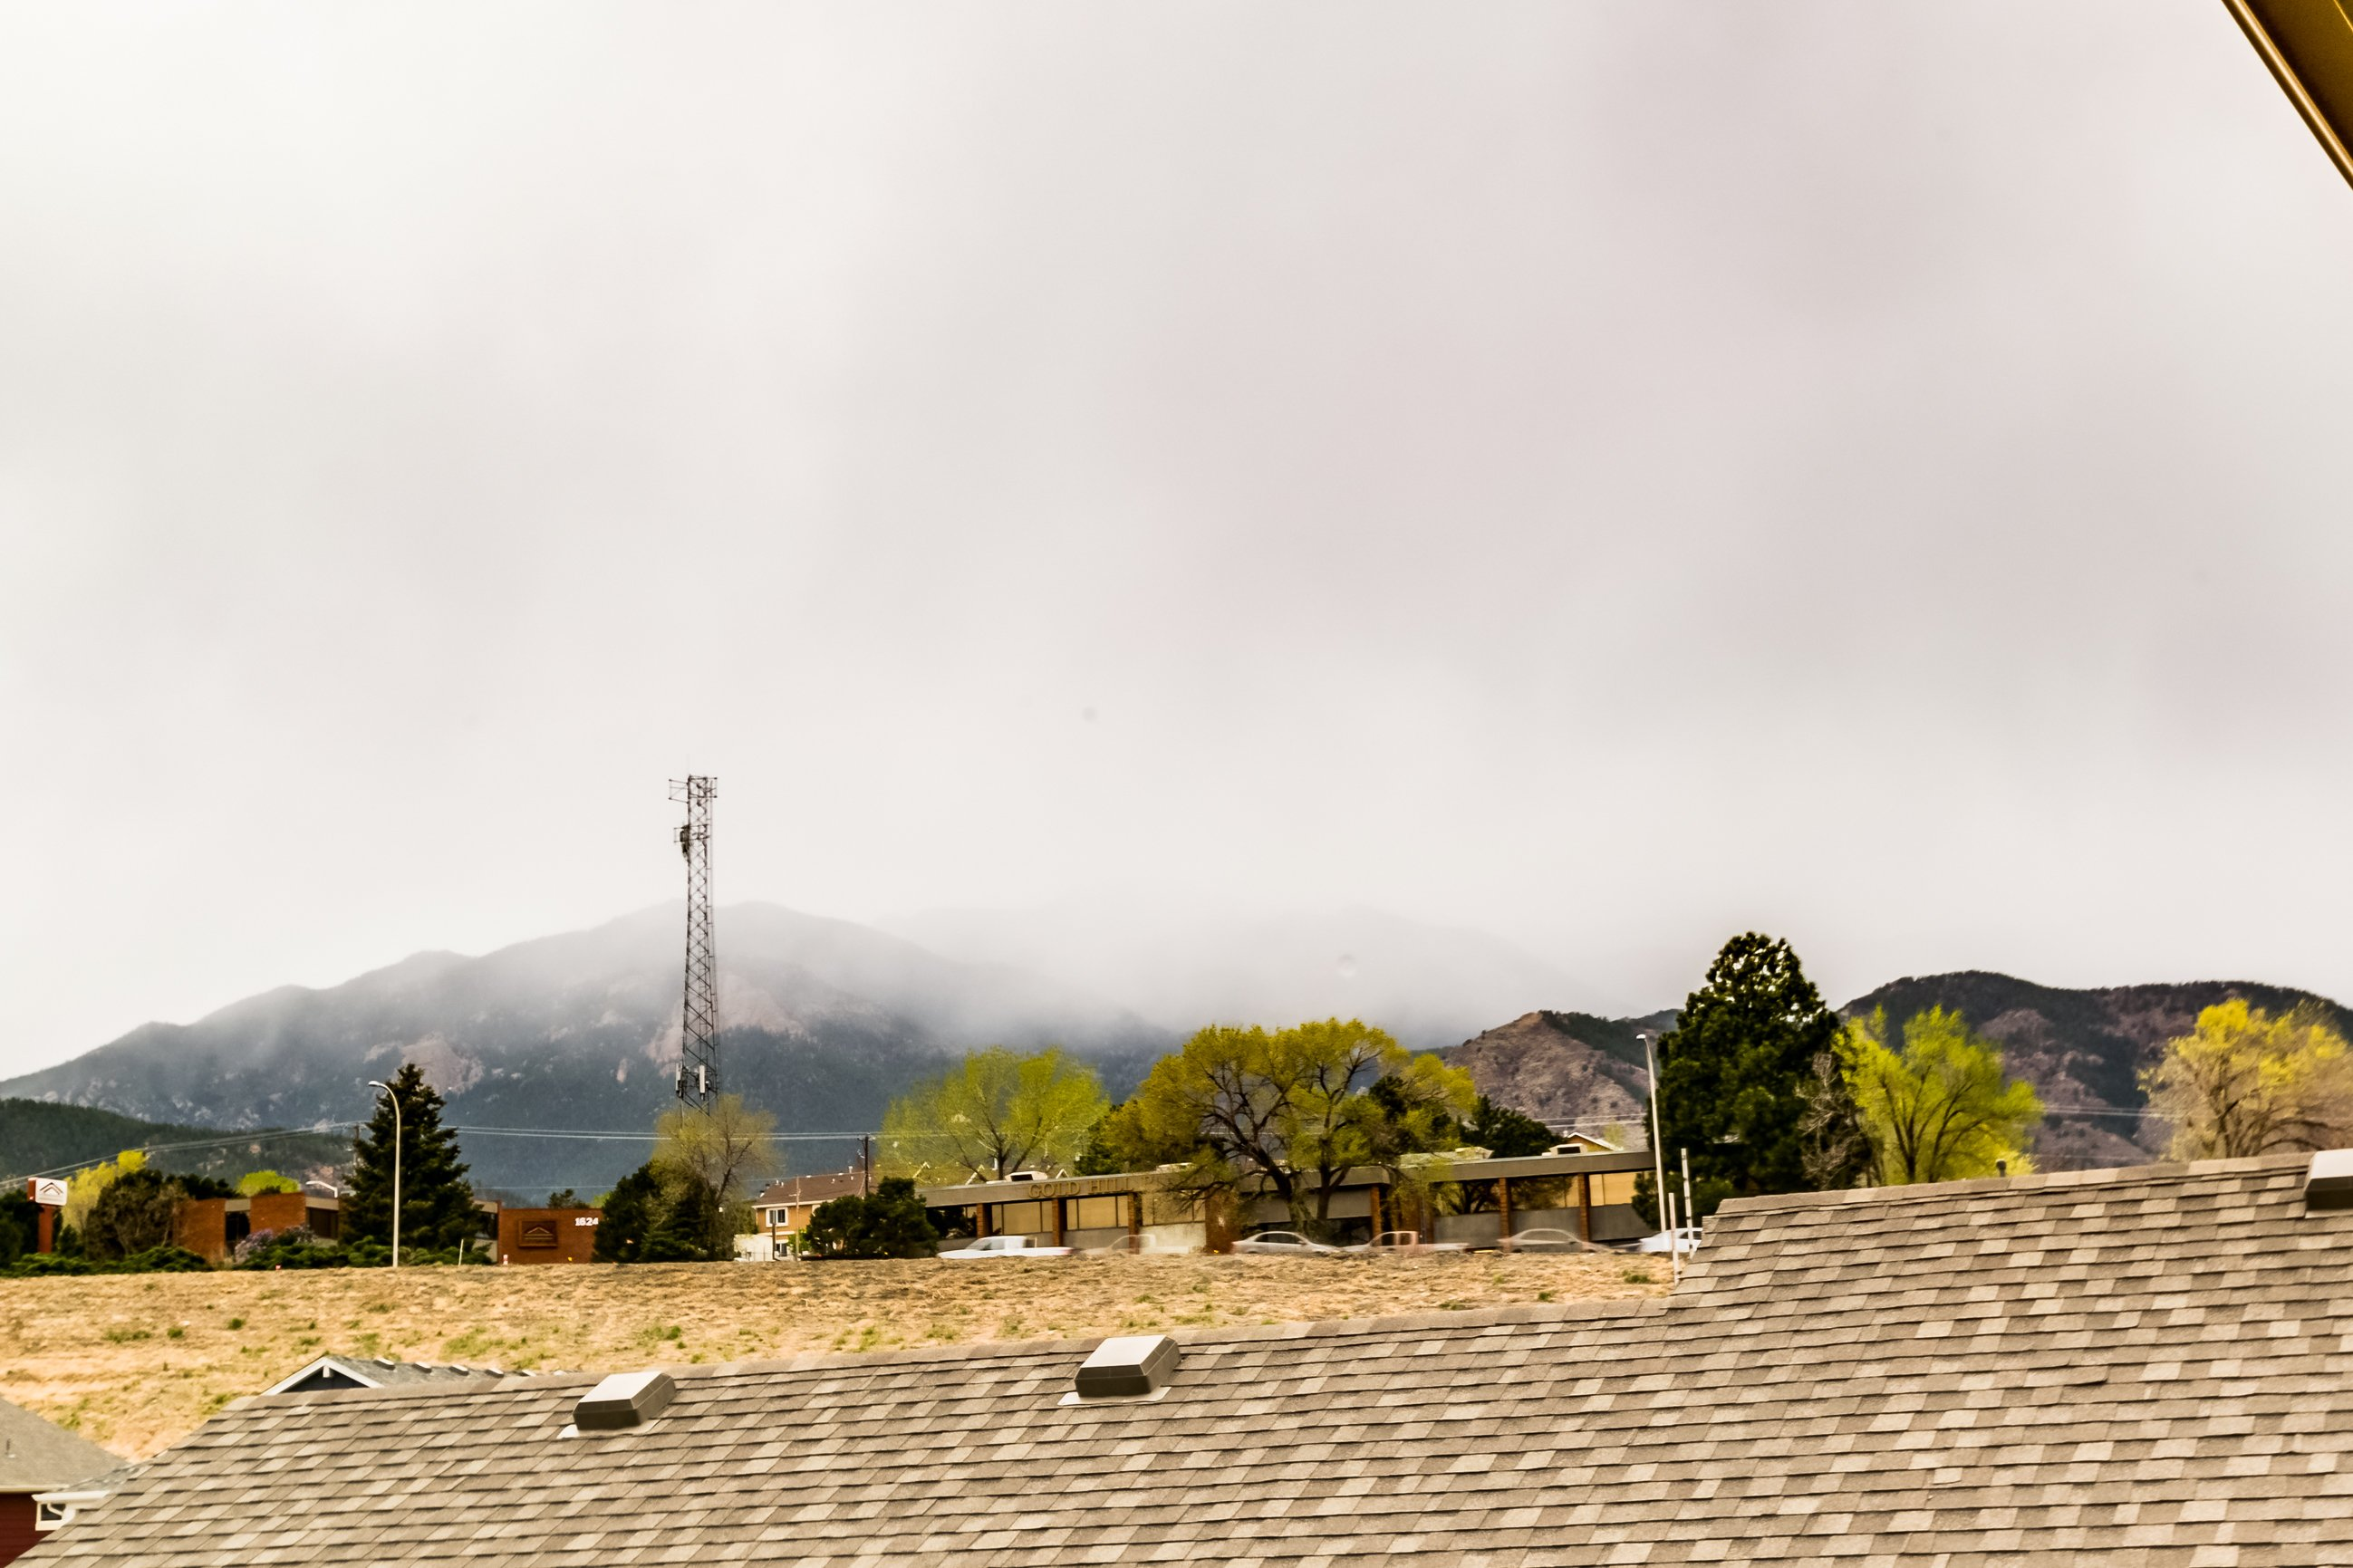 Picture of Pikes Peak as seen from 166 Autumn Bell